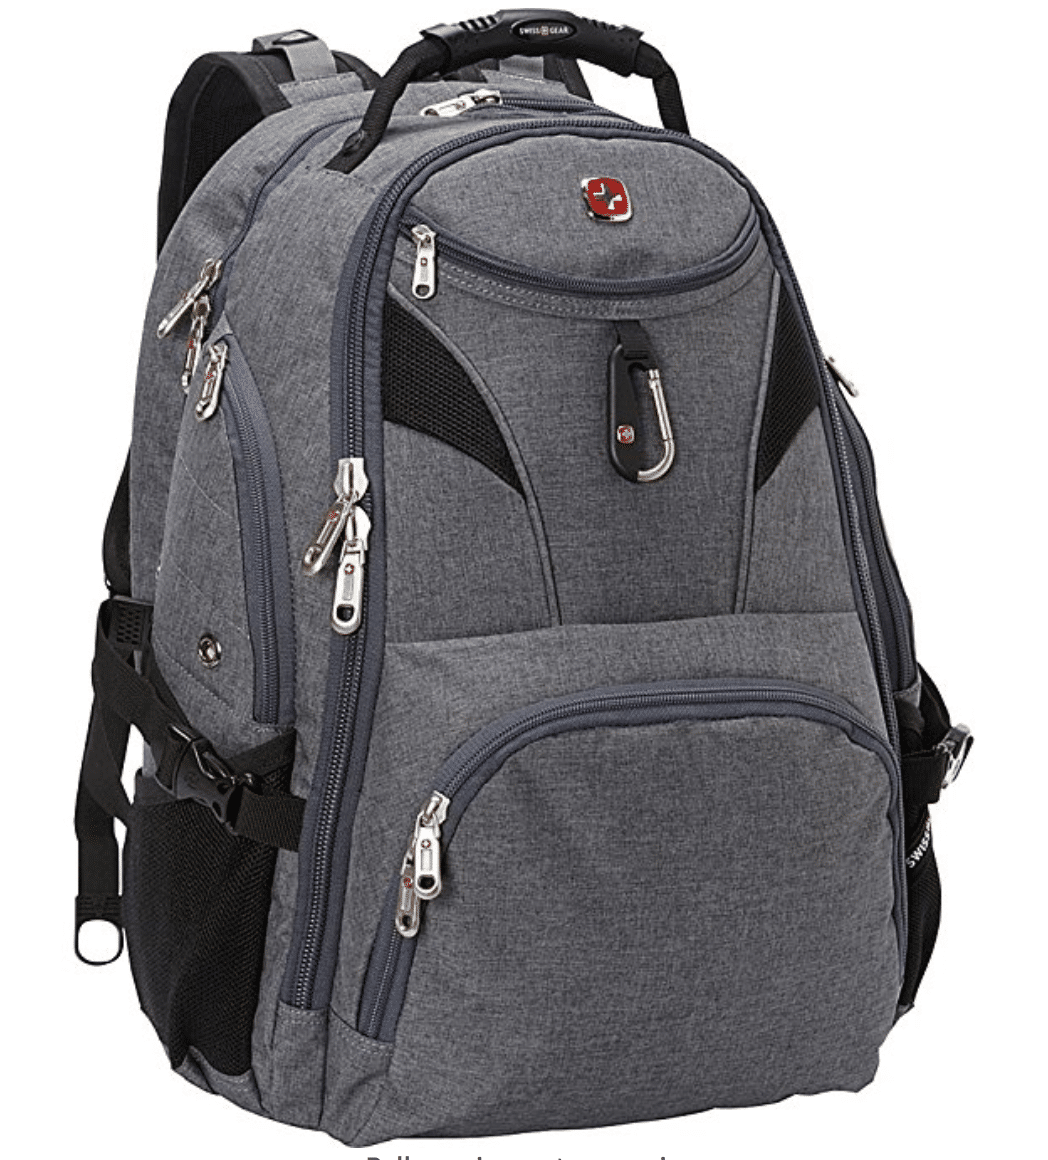 best backpacks, best backpack brands, backpack brands, top rated backpacks, backpack 2017, best rated backpacks, popular backpacks, top backpacks, popular backpack brands, best backpacks 2017, top backpack brands, high quality backpacks, famous backpack brands, good backpack brands, backpack companies, great backpacks, top backpacks 2017, best backpacks for men, coolest backpacks 2017, best backpack companies, cool backpack brands, famous backpacks, hipster backpacks, urban backpack, hipster backpack brands, quality backpacks, name brand backpacks, nice backpacks, backpack styles, book bag brands, good backpacks, buy backpacks online, backpack online, online shopping sites for backpacks, websites to buy backpacks, backpack online shop, backpack online shopping, best backpacks online, backpack, www backpack com, backpacks com, backpack website, backpack store, backpack shopping, backpacks.com, buy backpack, bookbags com, backpacka, all backpacks, backpack bookbag, which backpack brand is the best